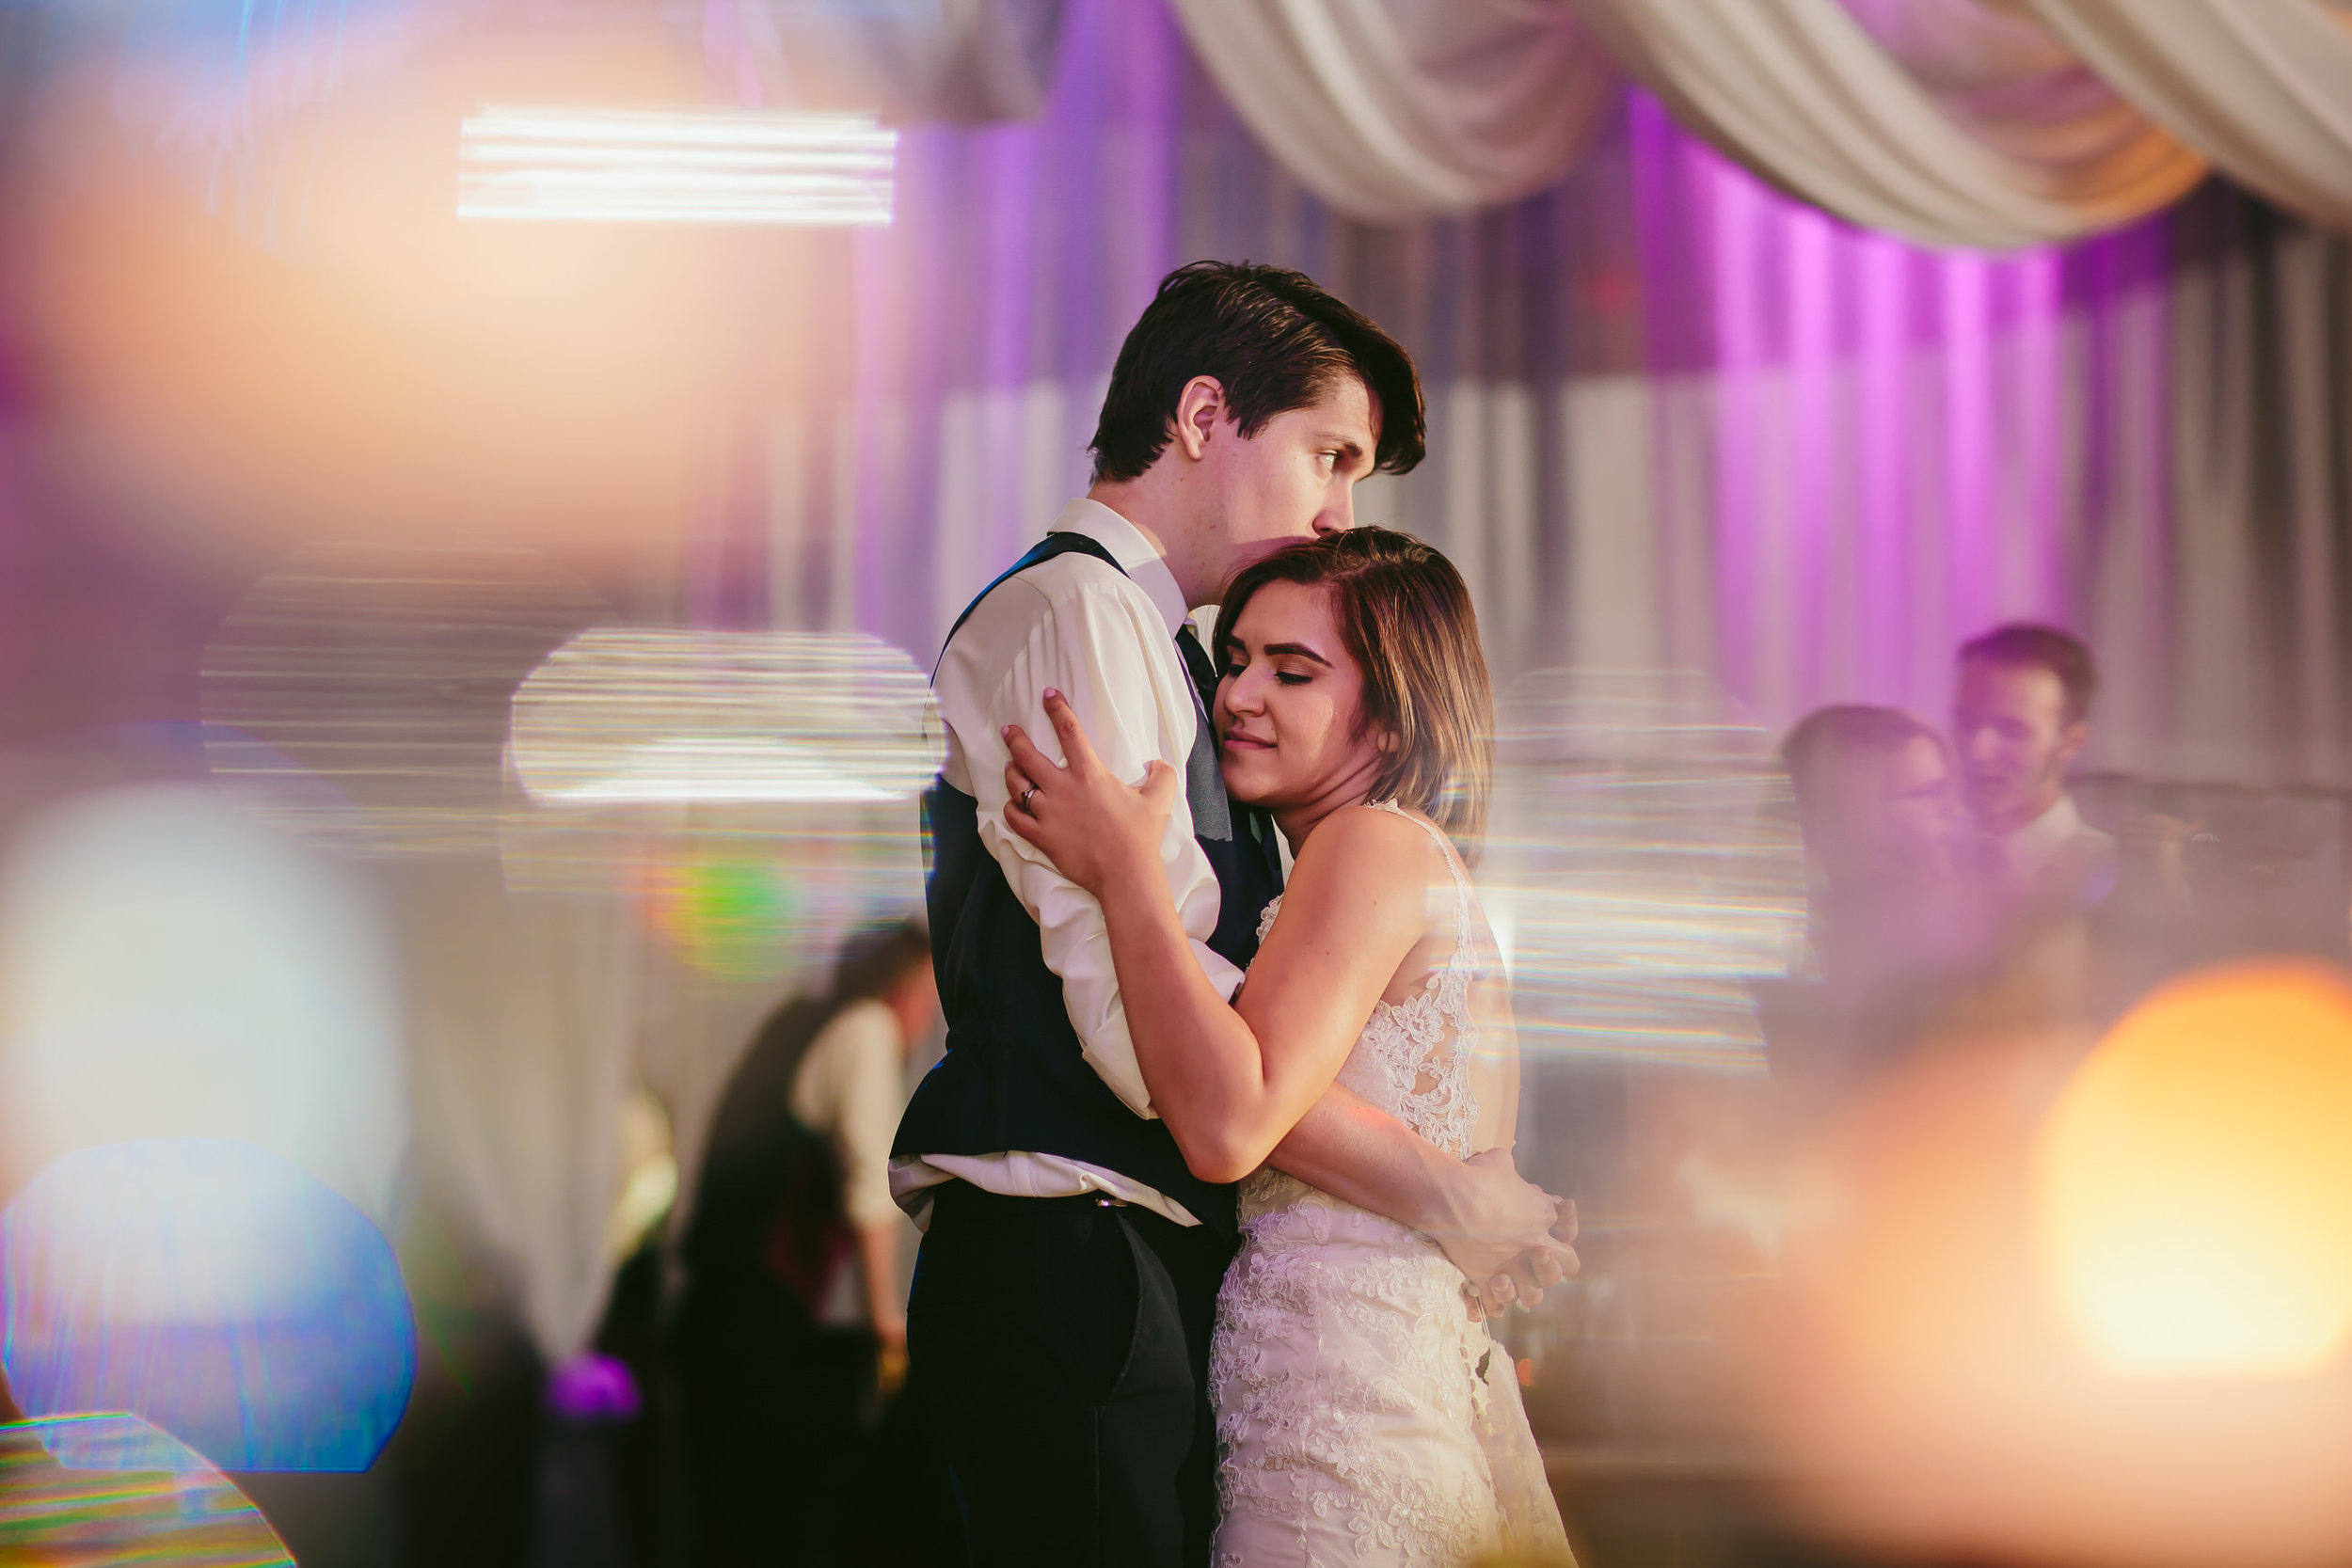 first_dance_love_moments_wedding_photography_tiny_house_hoto.jpg